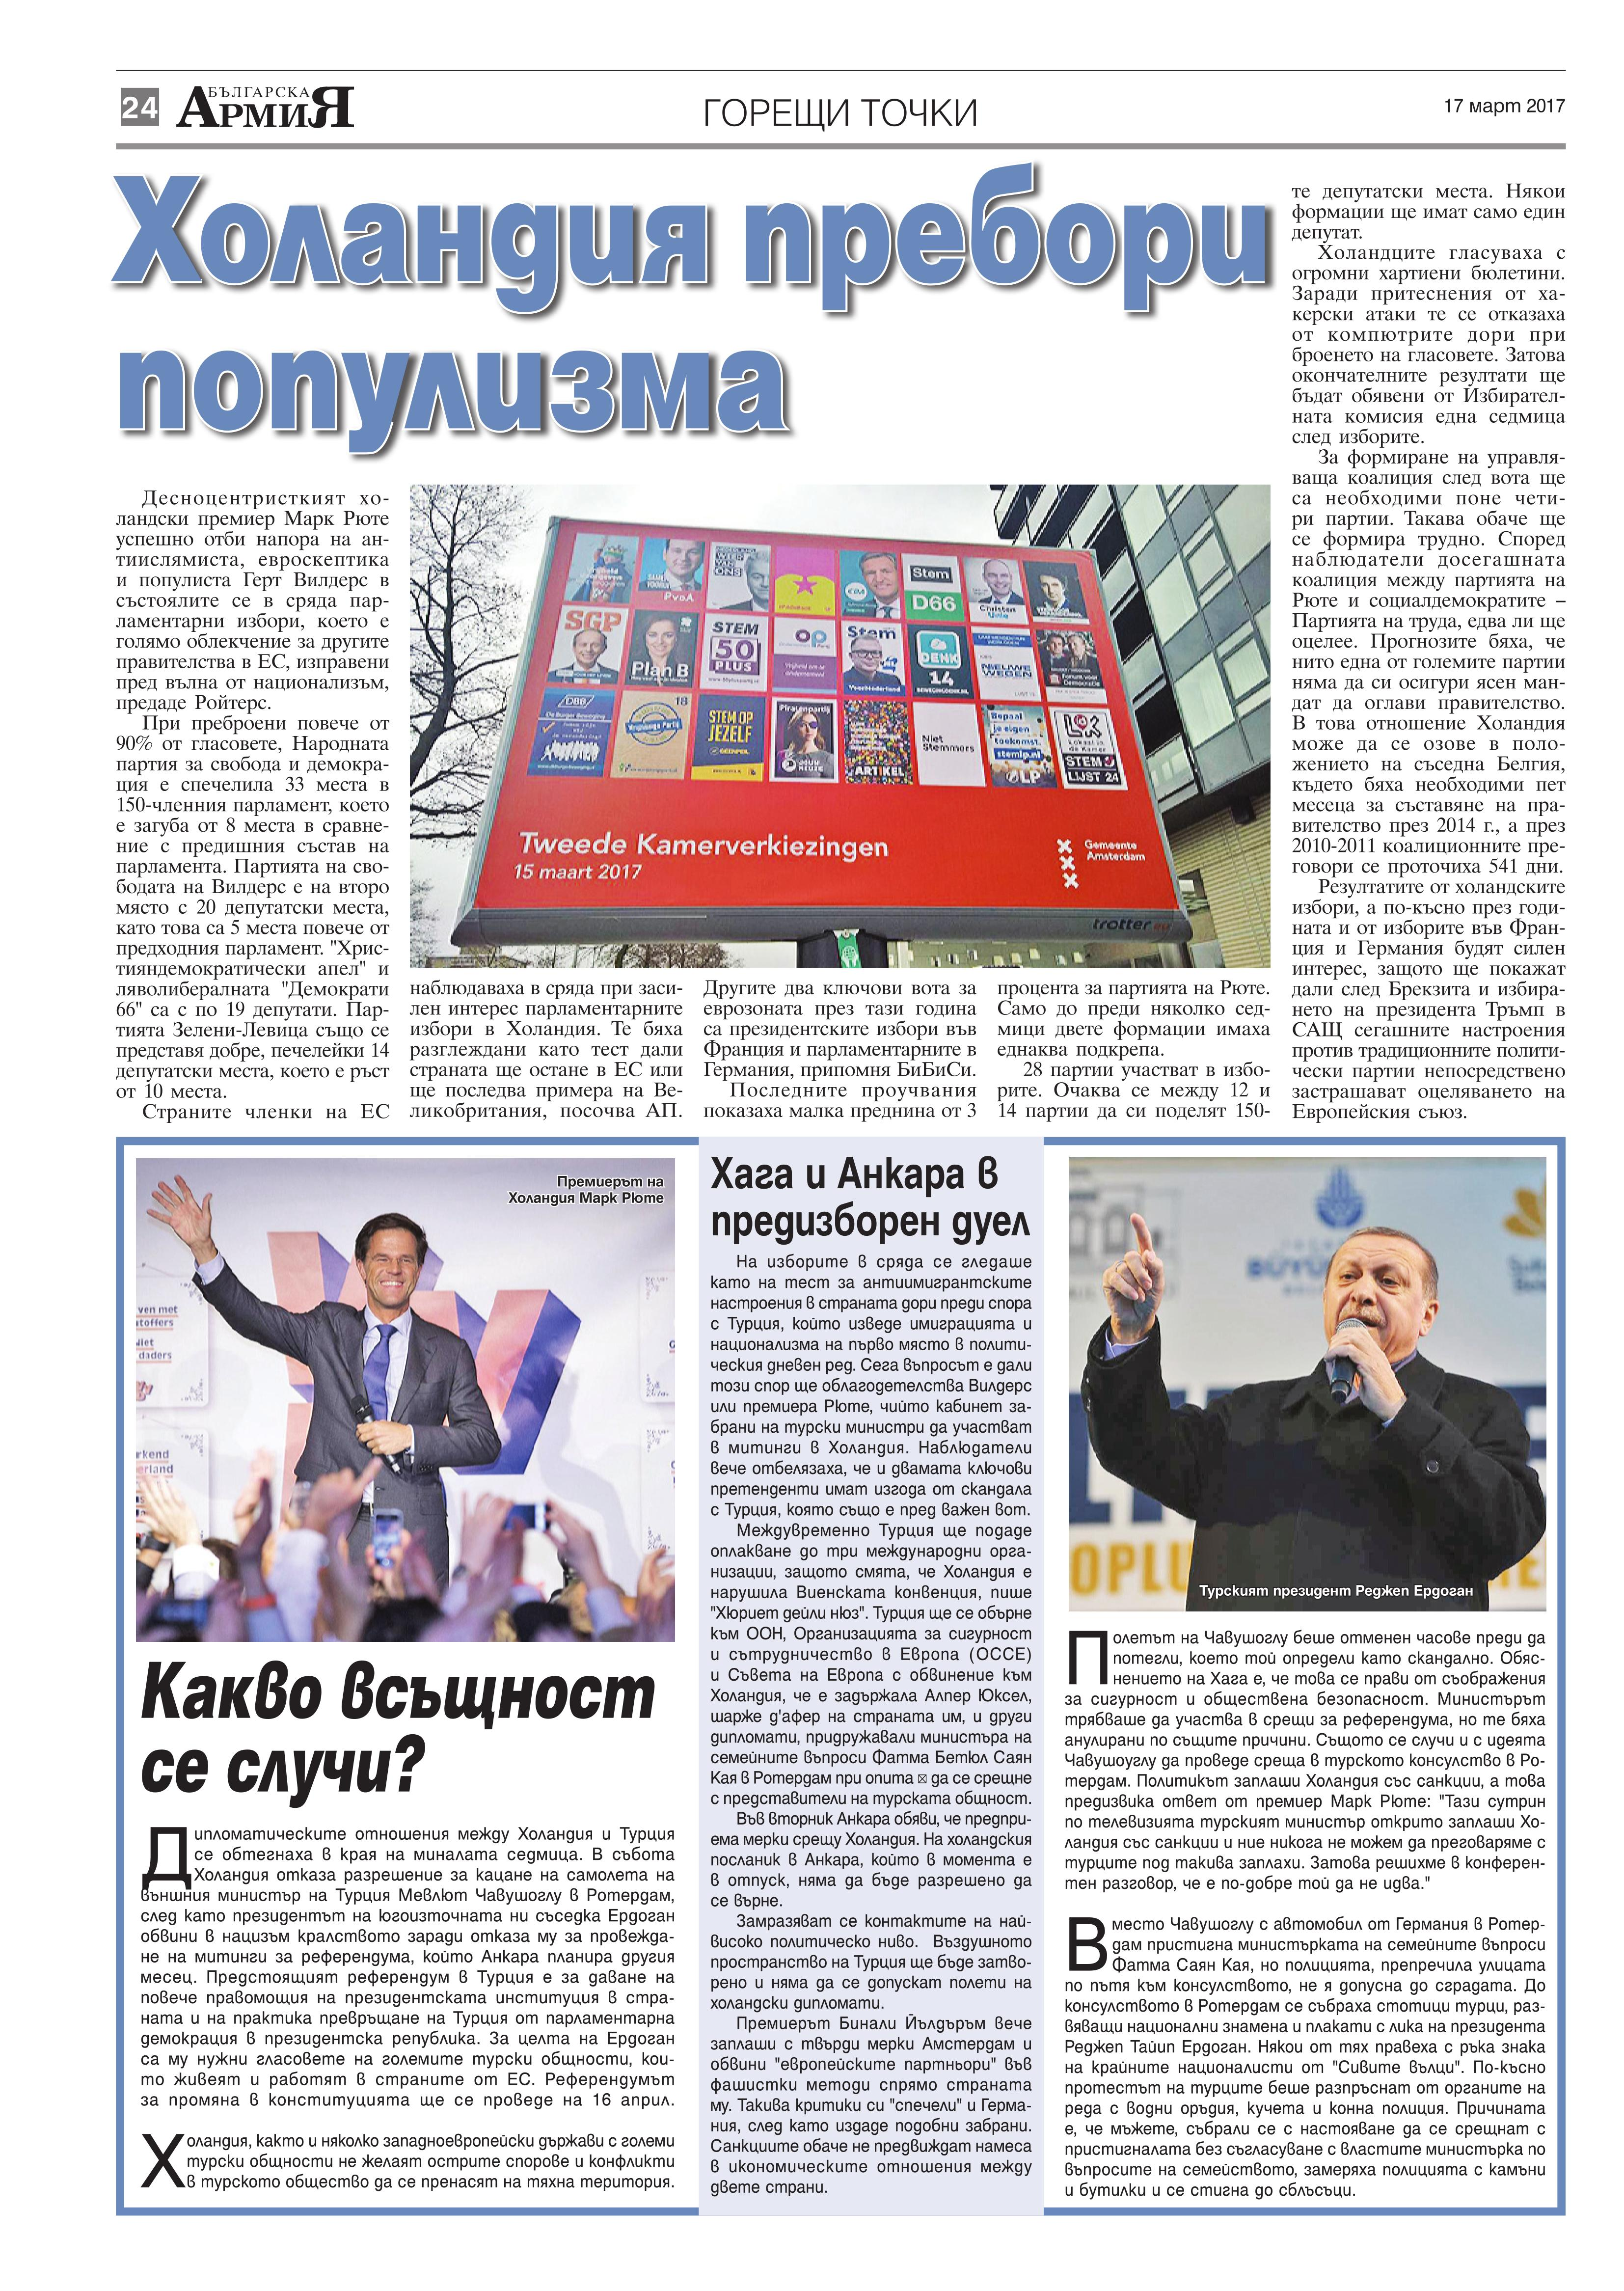 https://www.armymedia.bg/wp-content/uploads/2015/06/24.page1_-17.jpg